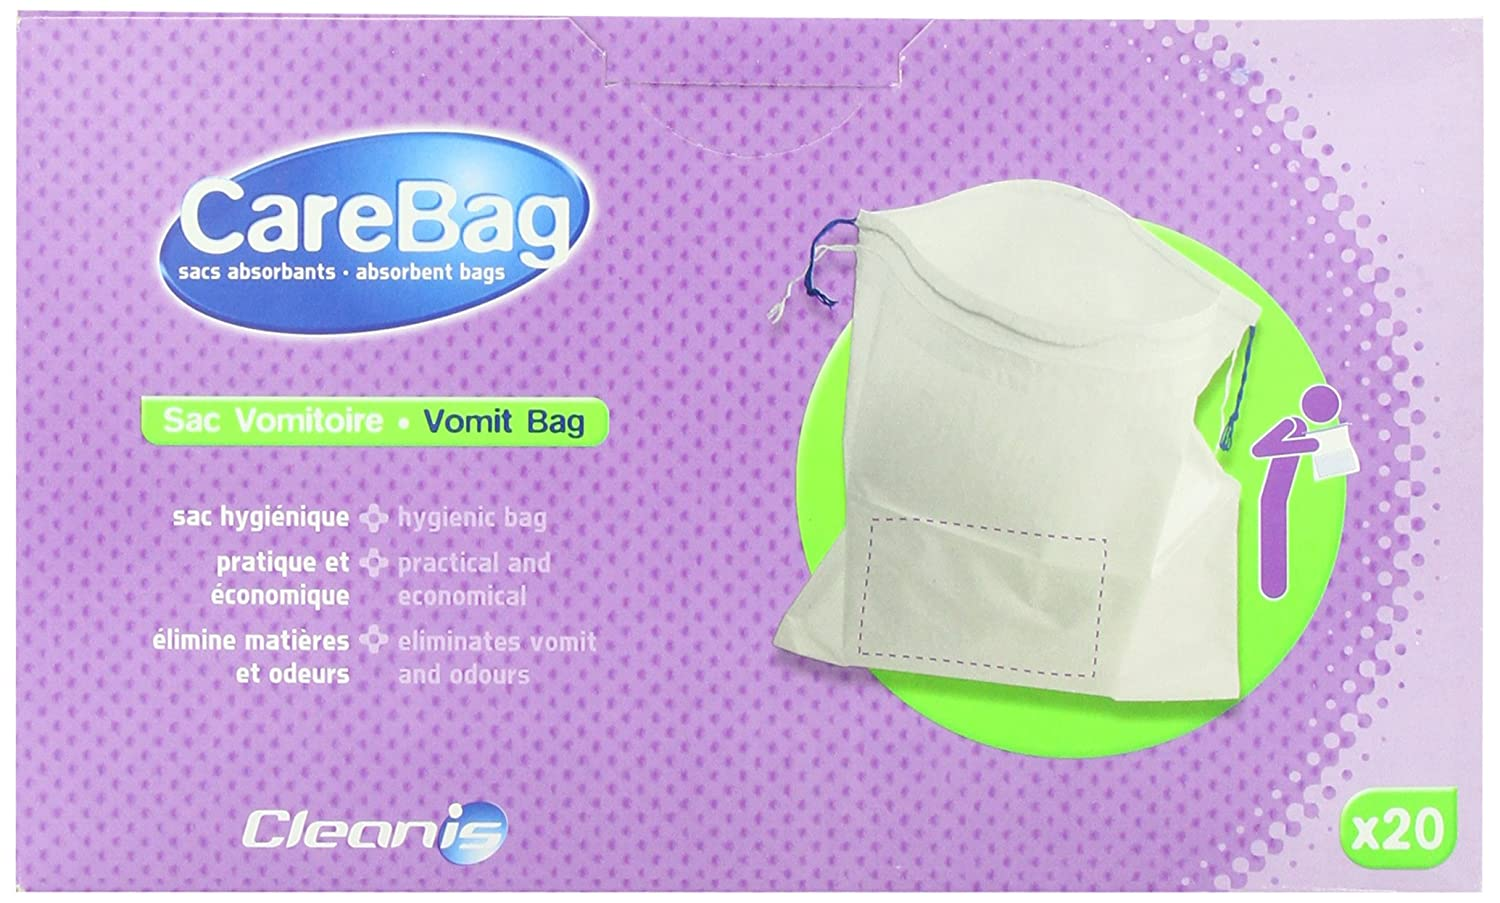 vomit bag for chemo kit